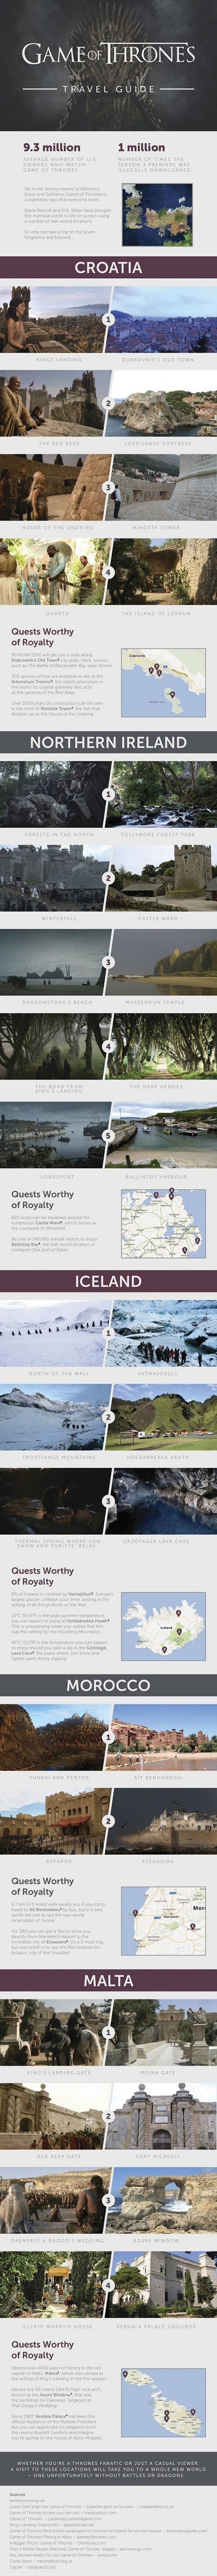 Iceland,Croatia,guide,Malta,morocco,Game of Thrones,Travel,northern ireland